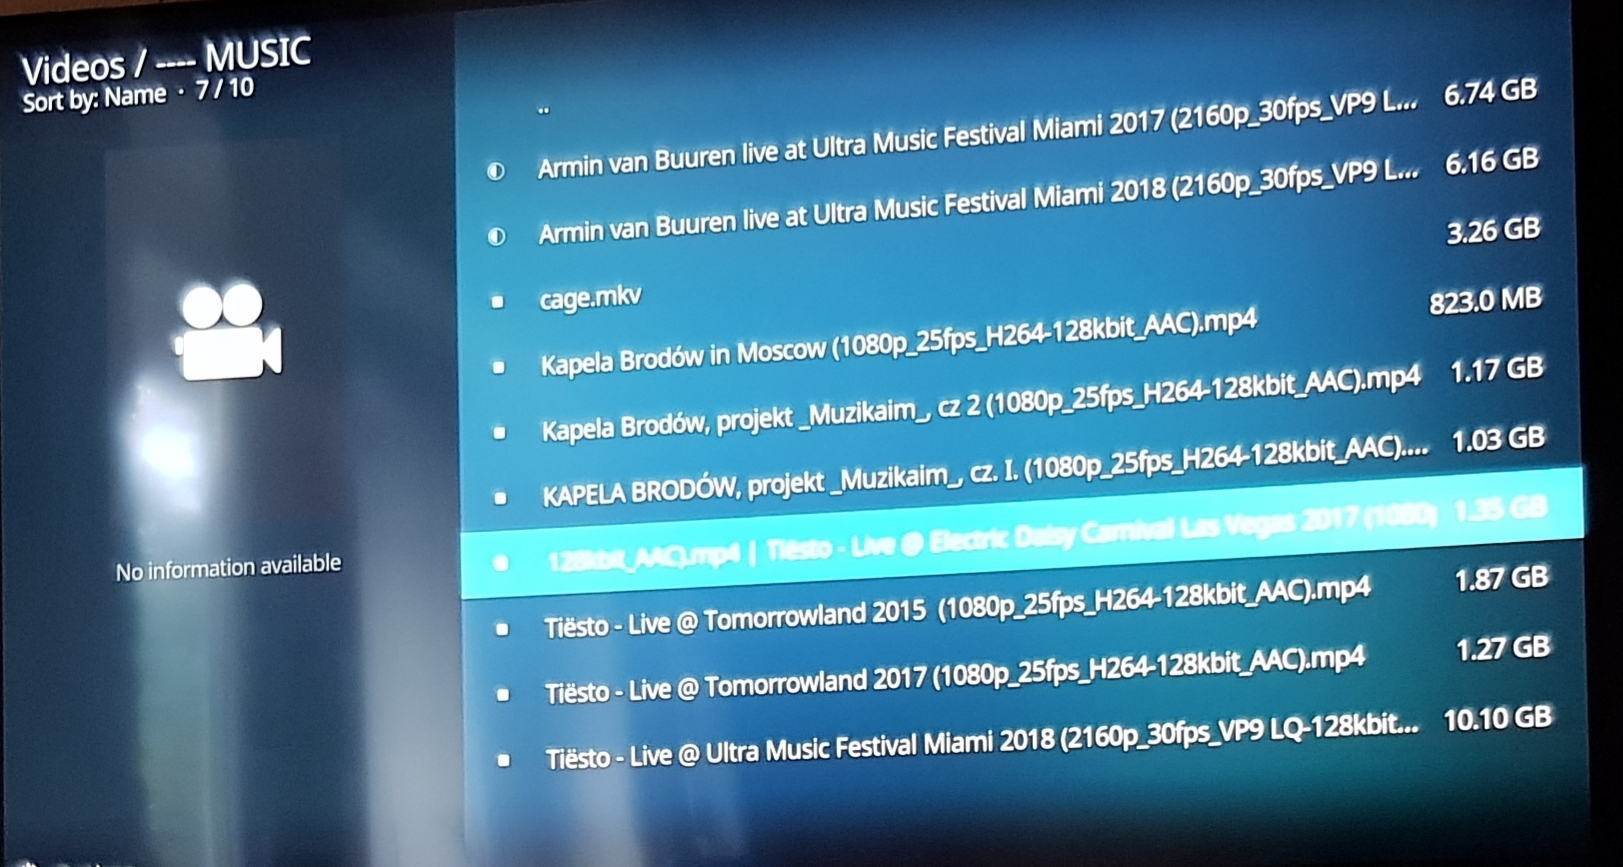 I can't play some mp4 files  · Issue #14809 · xbmc/xbmc · GitHub